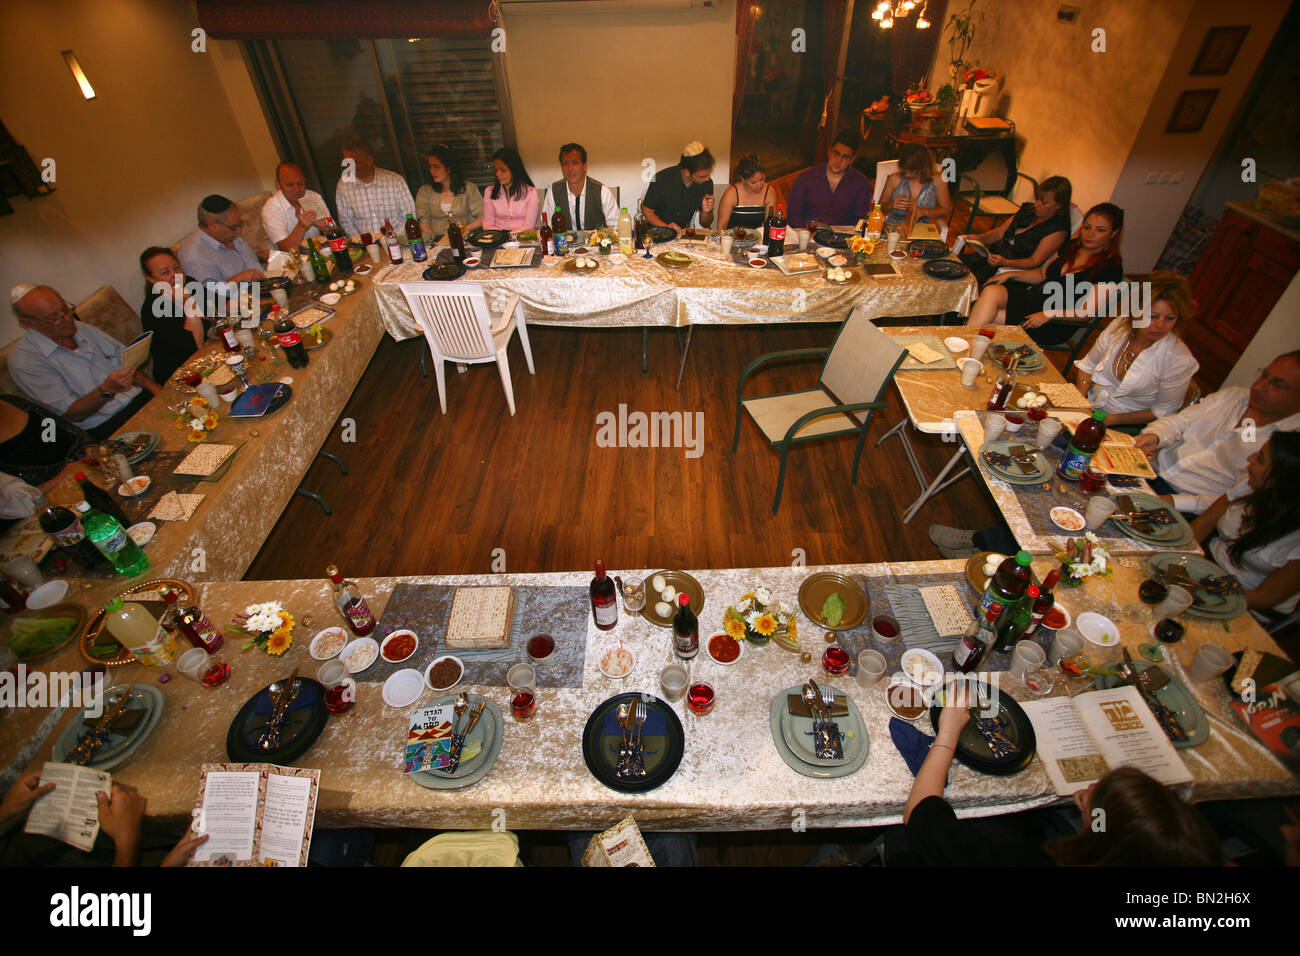 An israeli family attending a 'Seder', the traditional passover dinner, - Stock Image